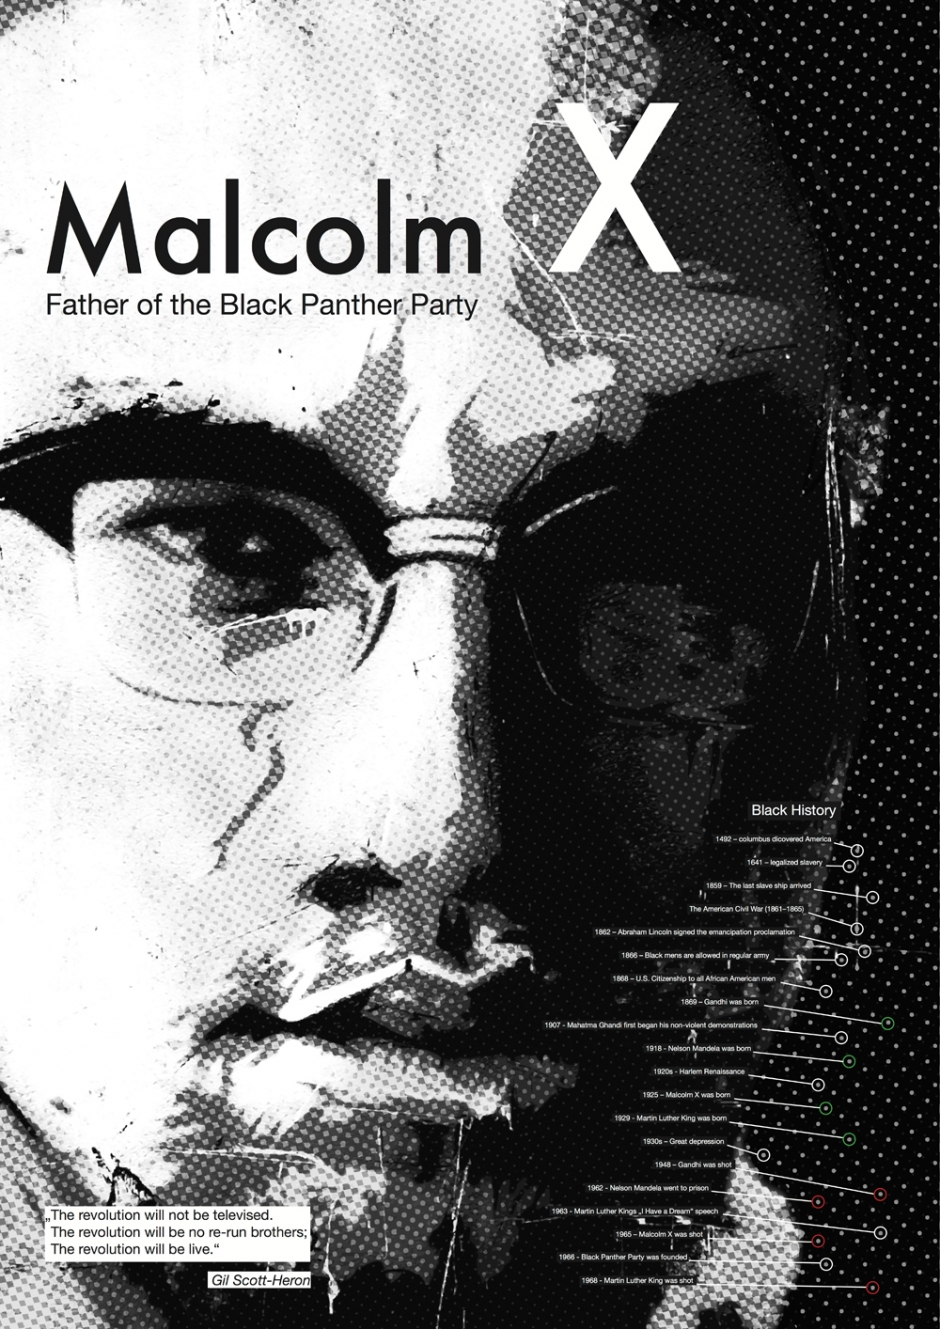 a0_poster_malcomx